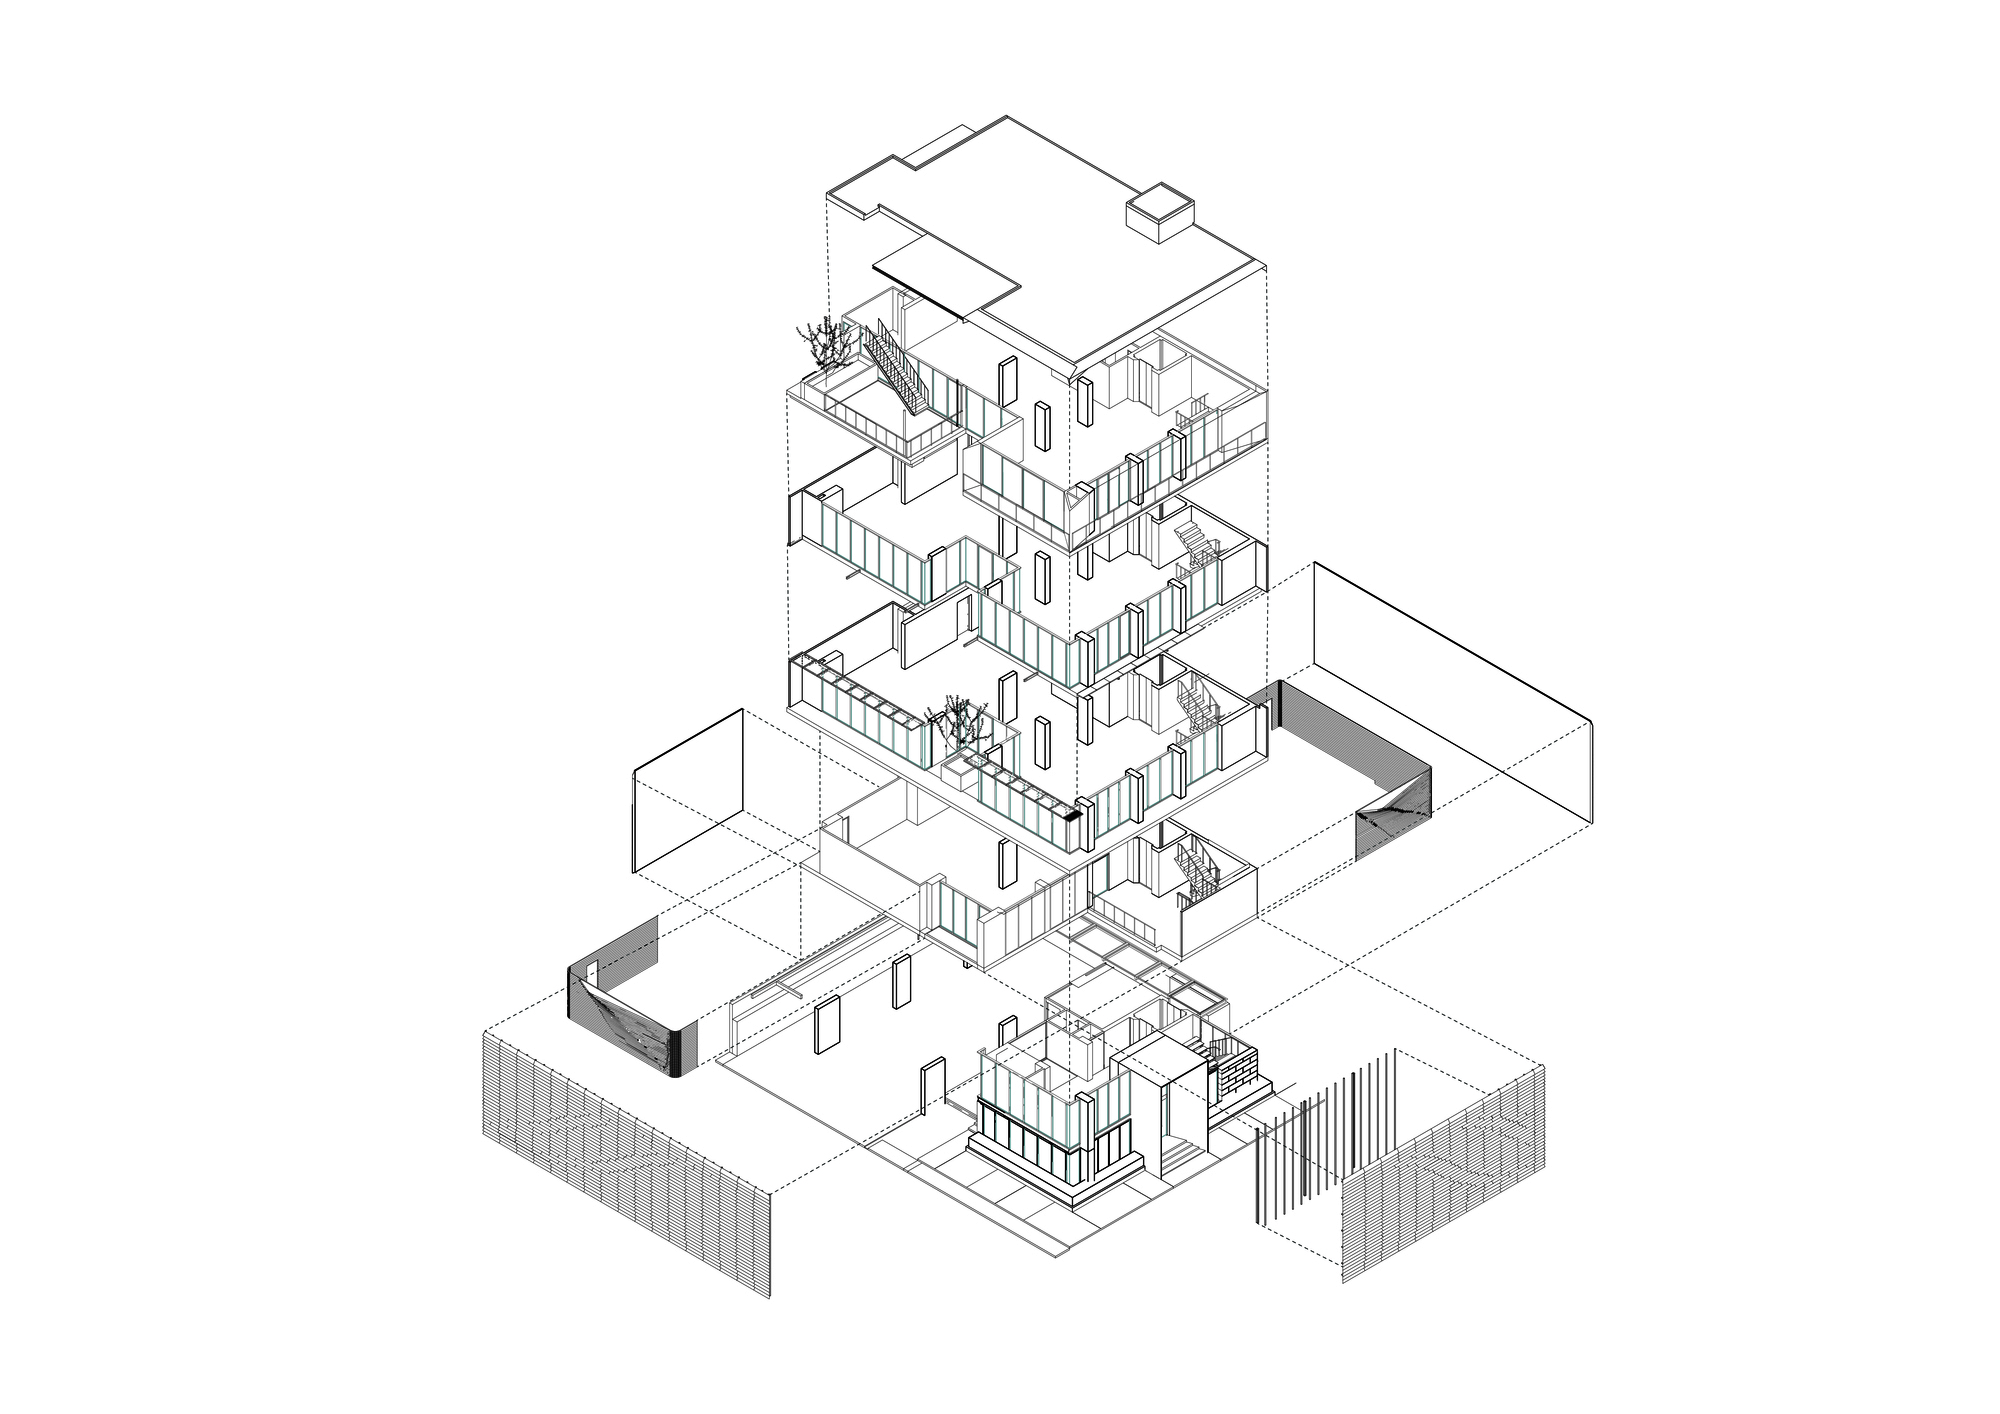 exploded axon diagram hino radio wiring gallery of peak office pure architect 41